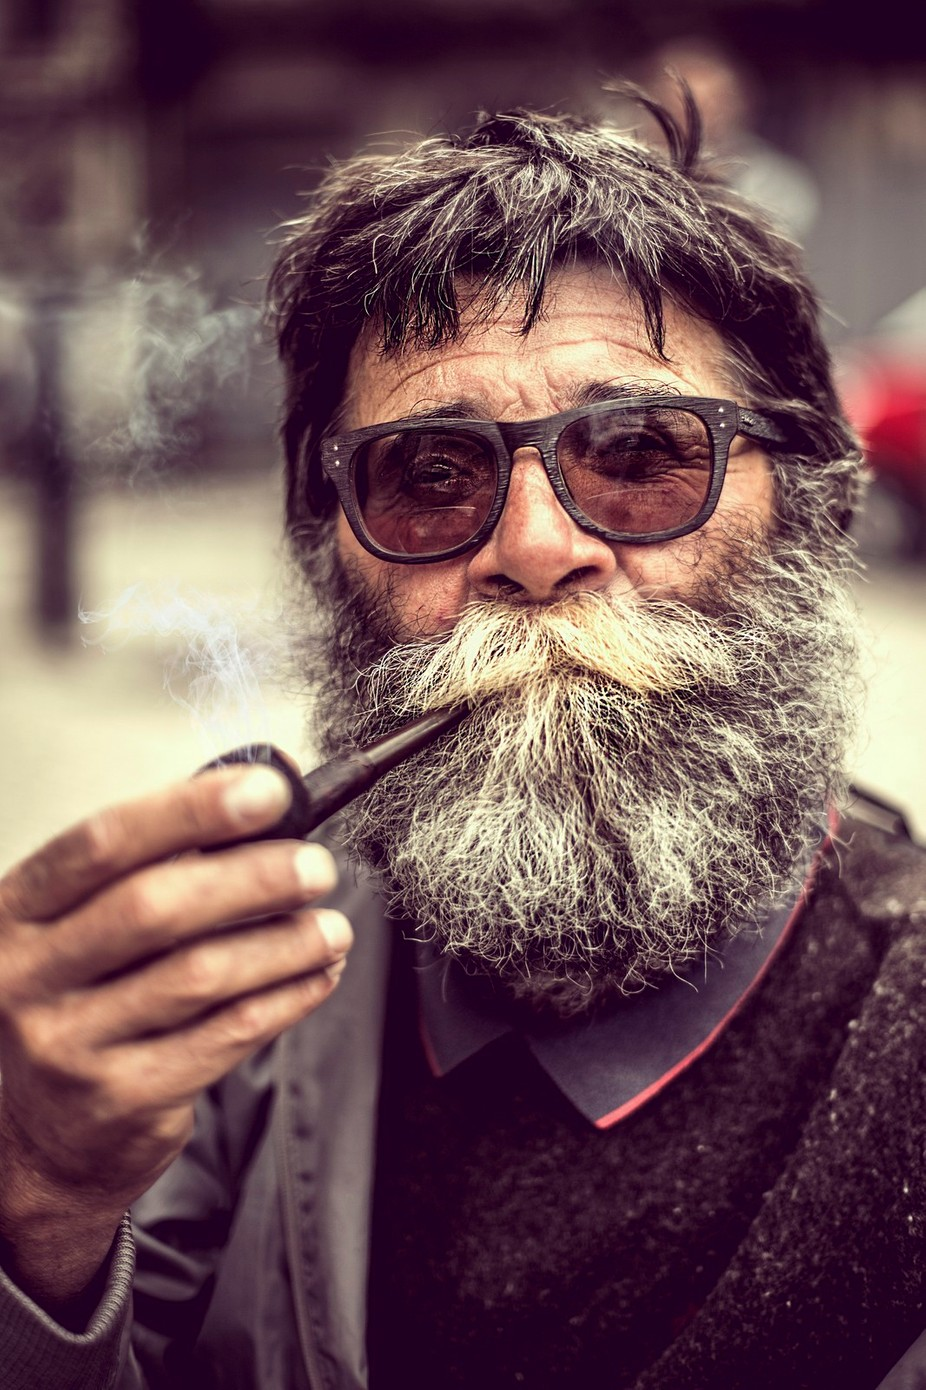 Beard Guy by pedropulido - Movember Photo Contest